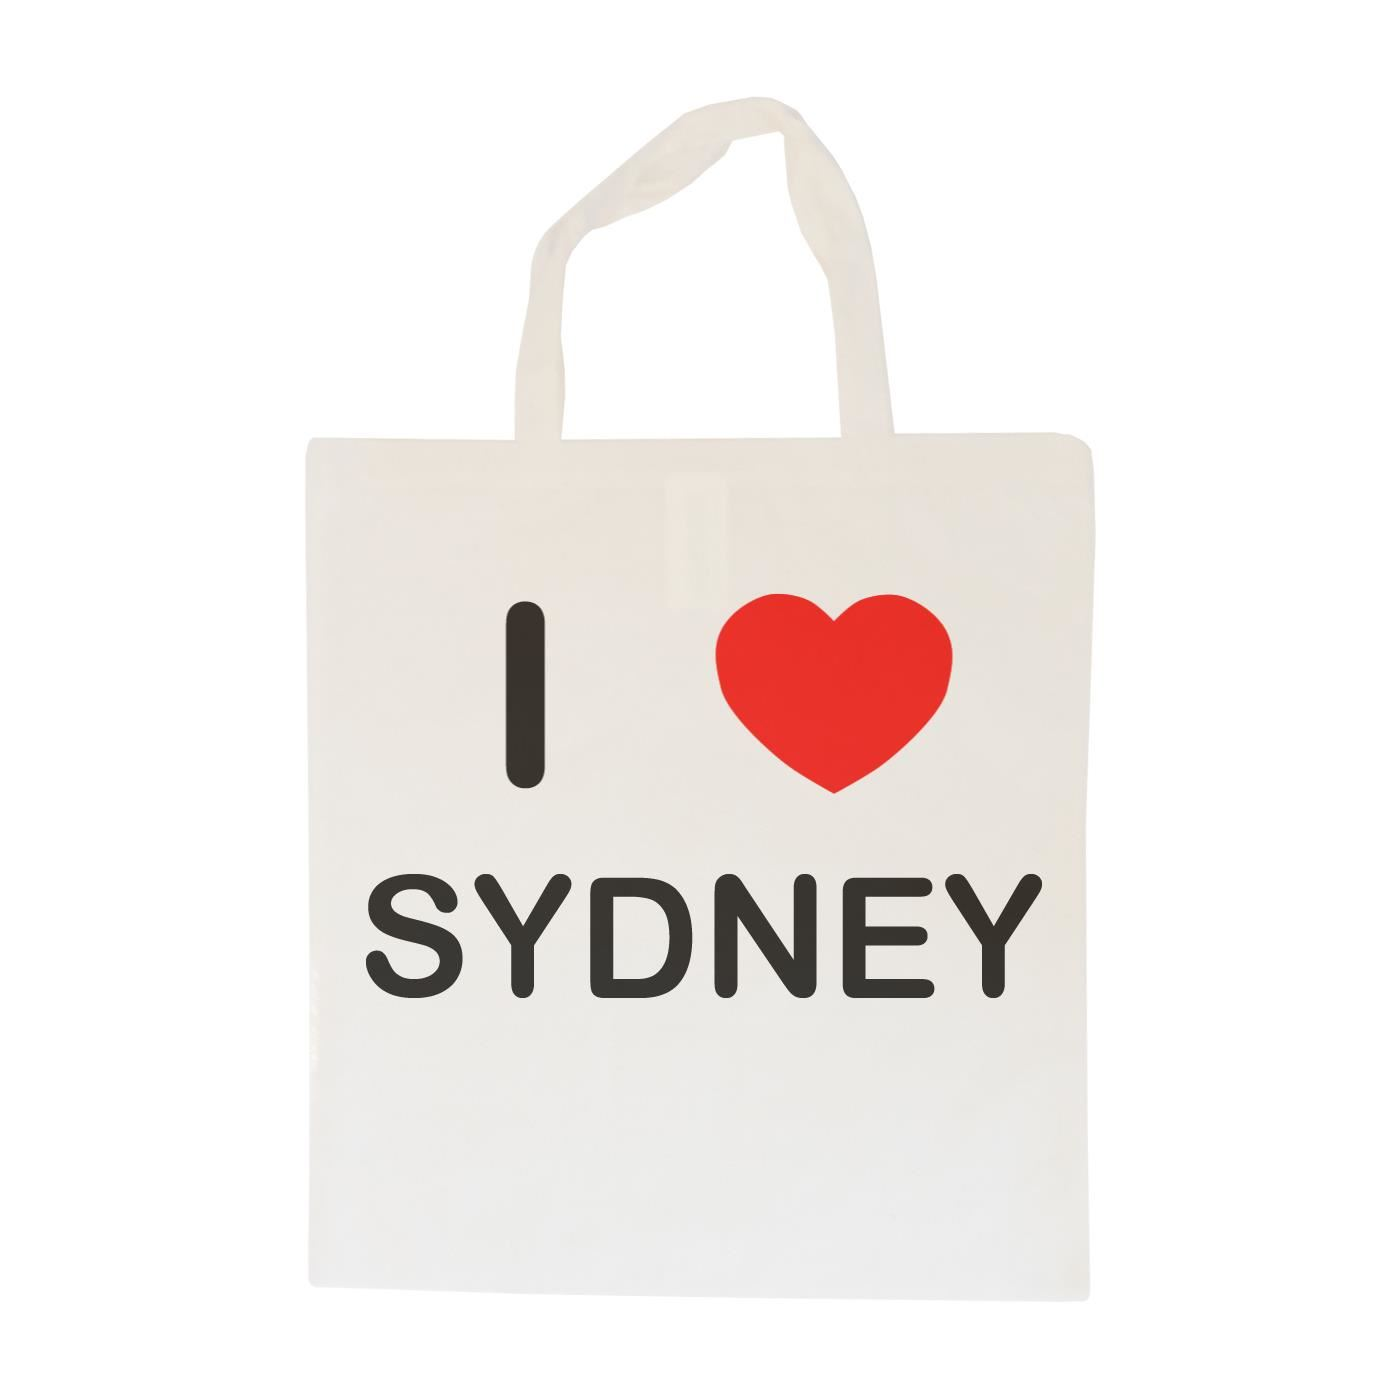 I Love Sydney - Cotton Bag | Size choice Tote, Shopper or Sling